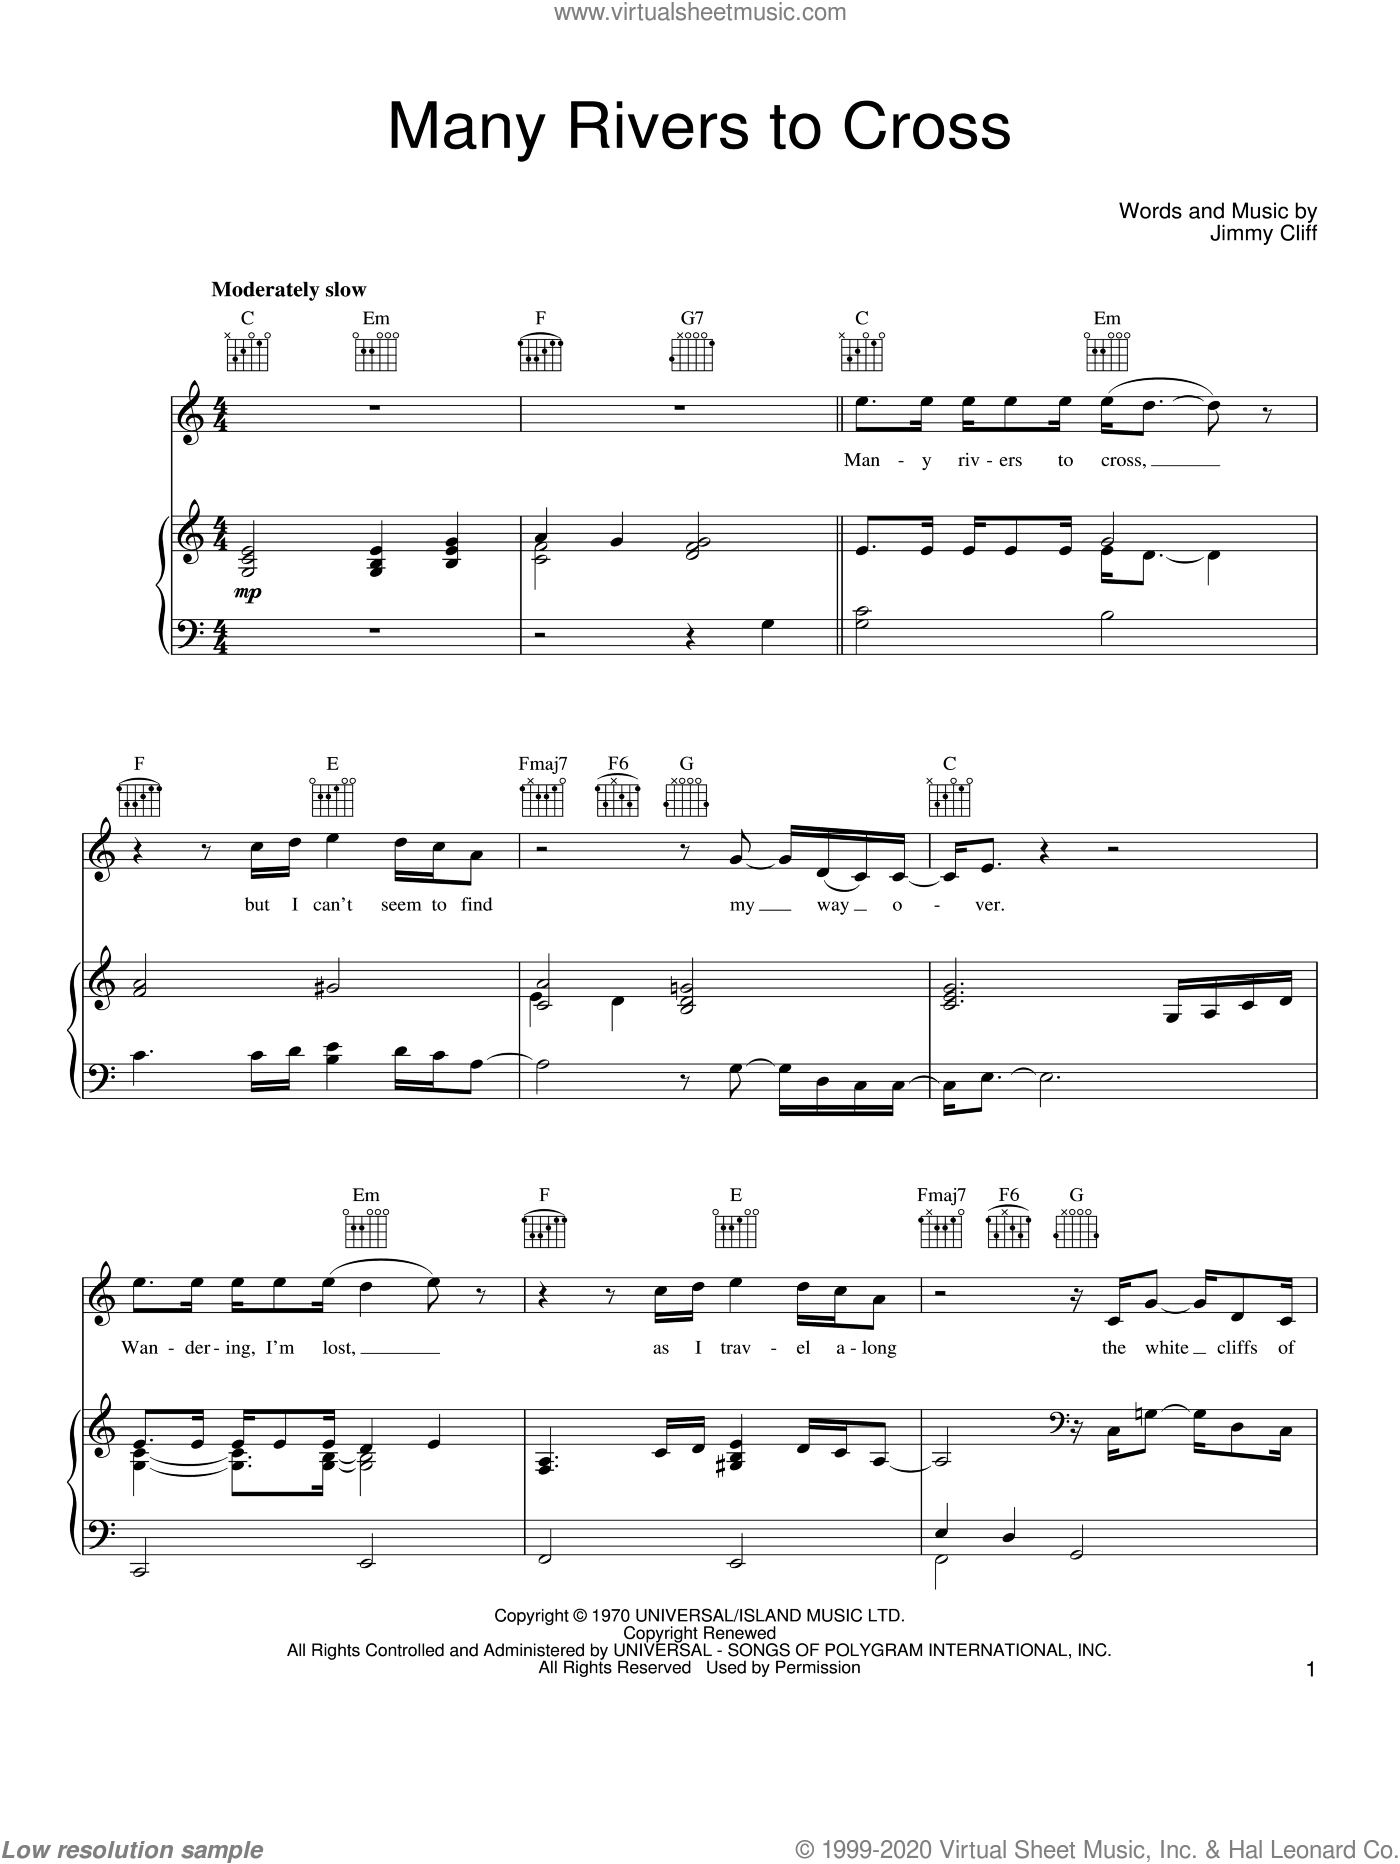 Many Rivers To Cross sheet music for voice, piano or guitar by Joe Cocker, UB40 and Jimmy Cliff, intermediate skill level